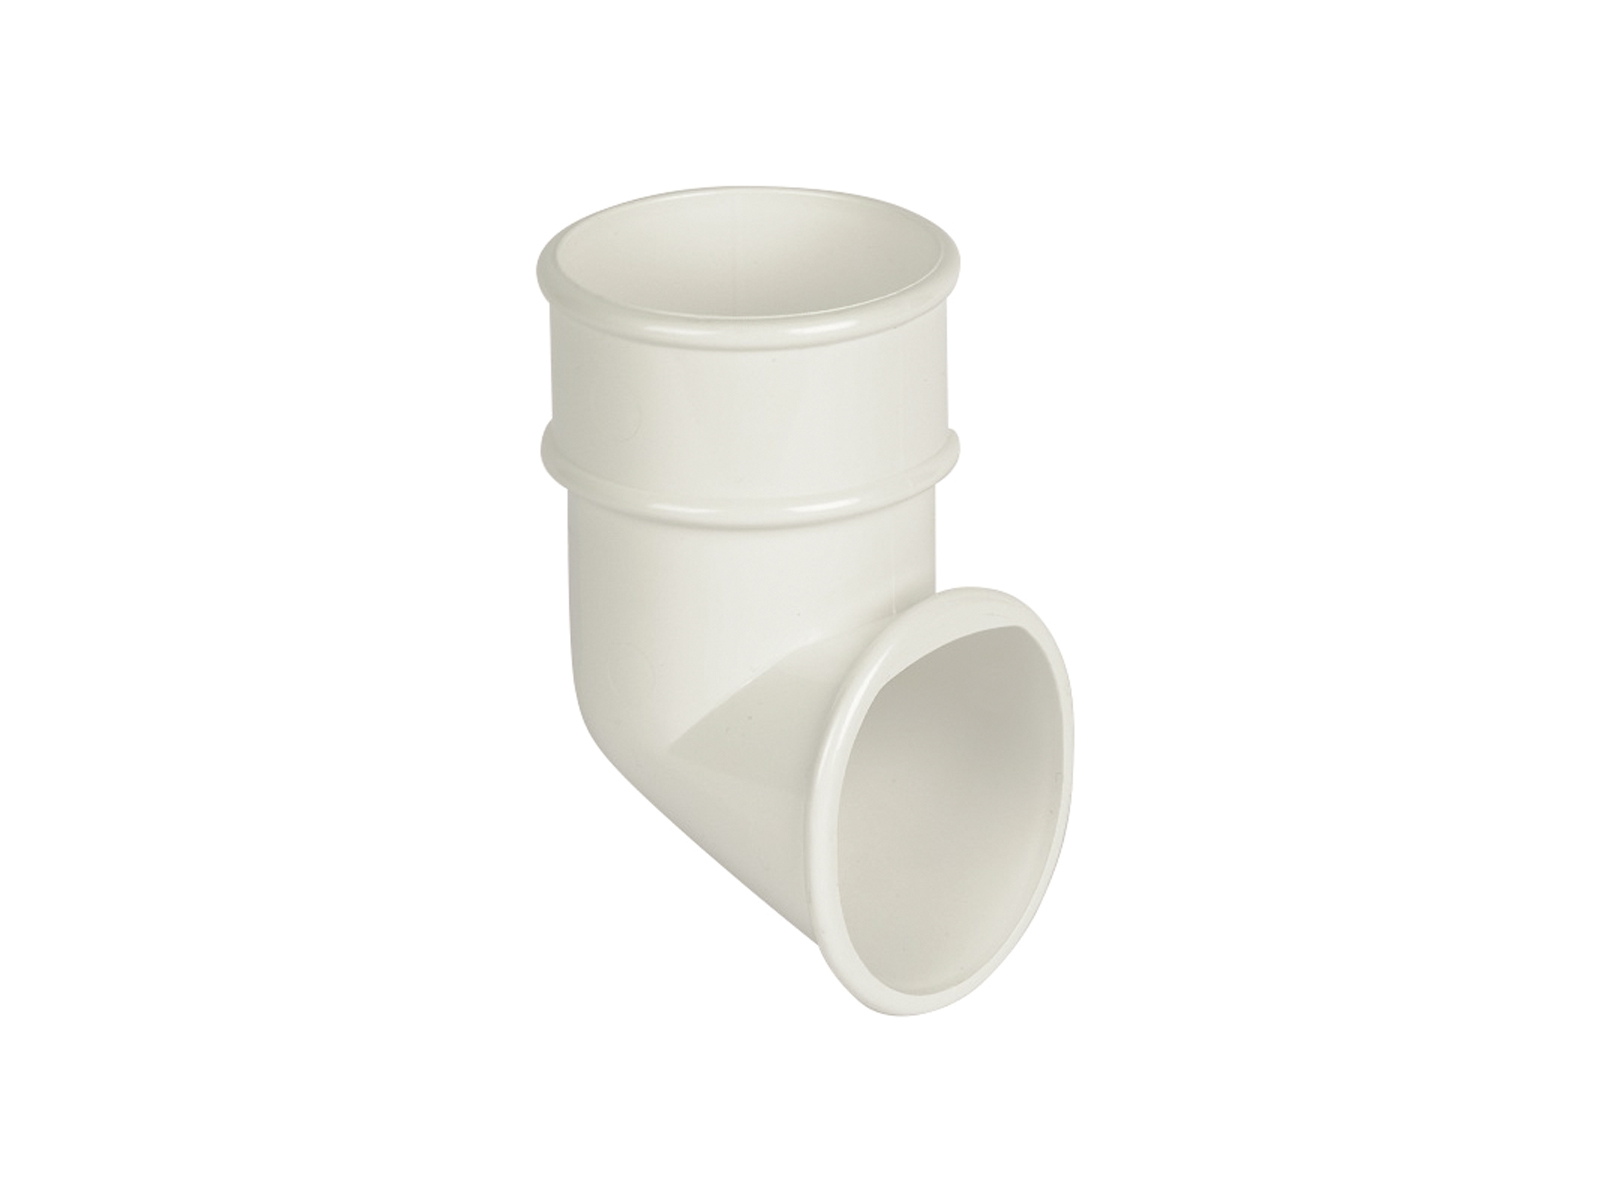 FLOPLAST RB3WH 68MM ROUND DOWNPIPE - SHOE - WHITE